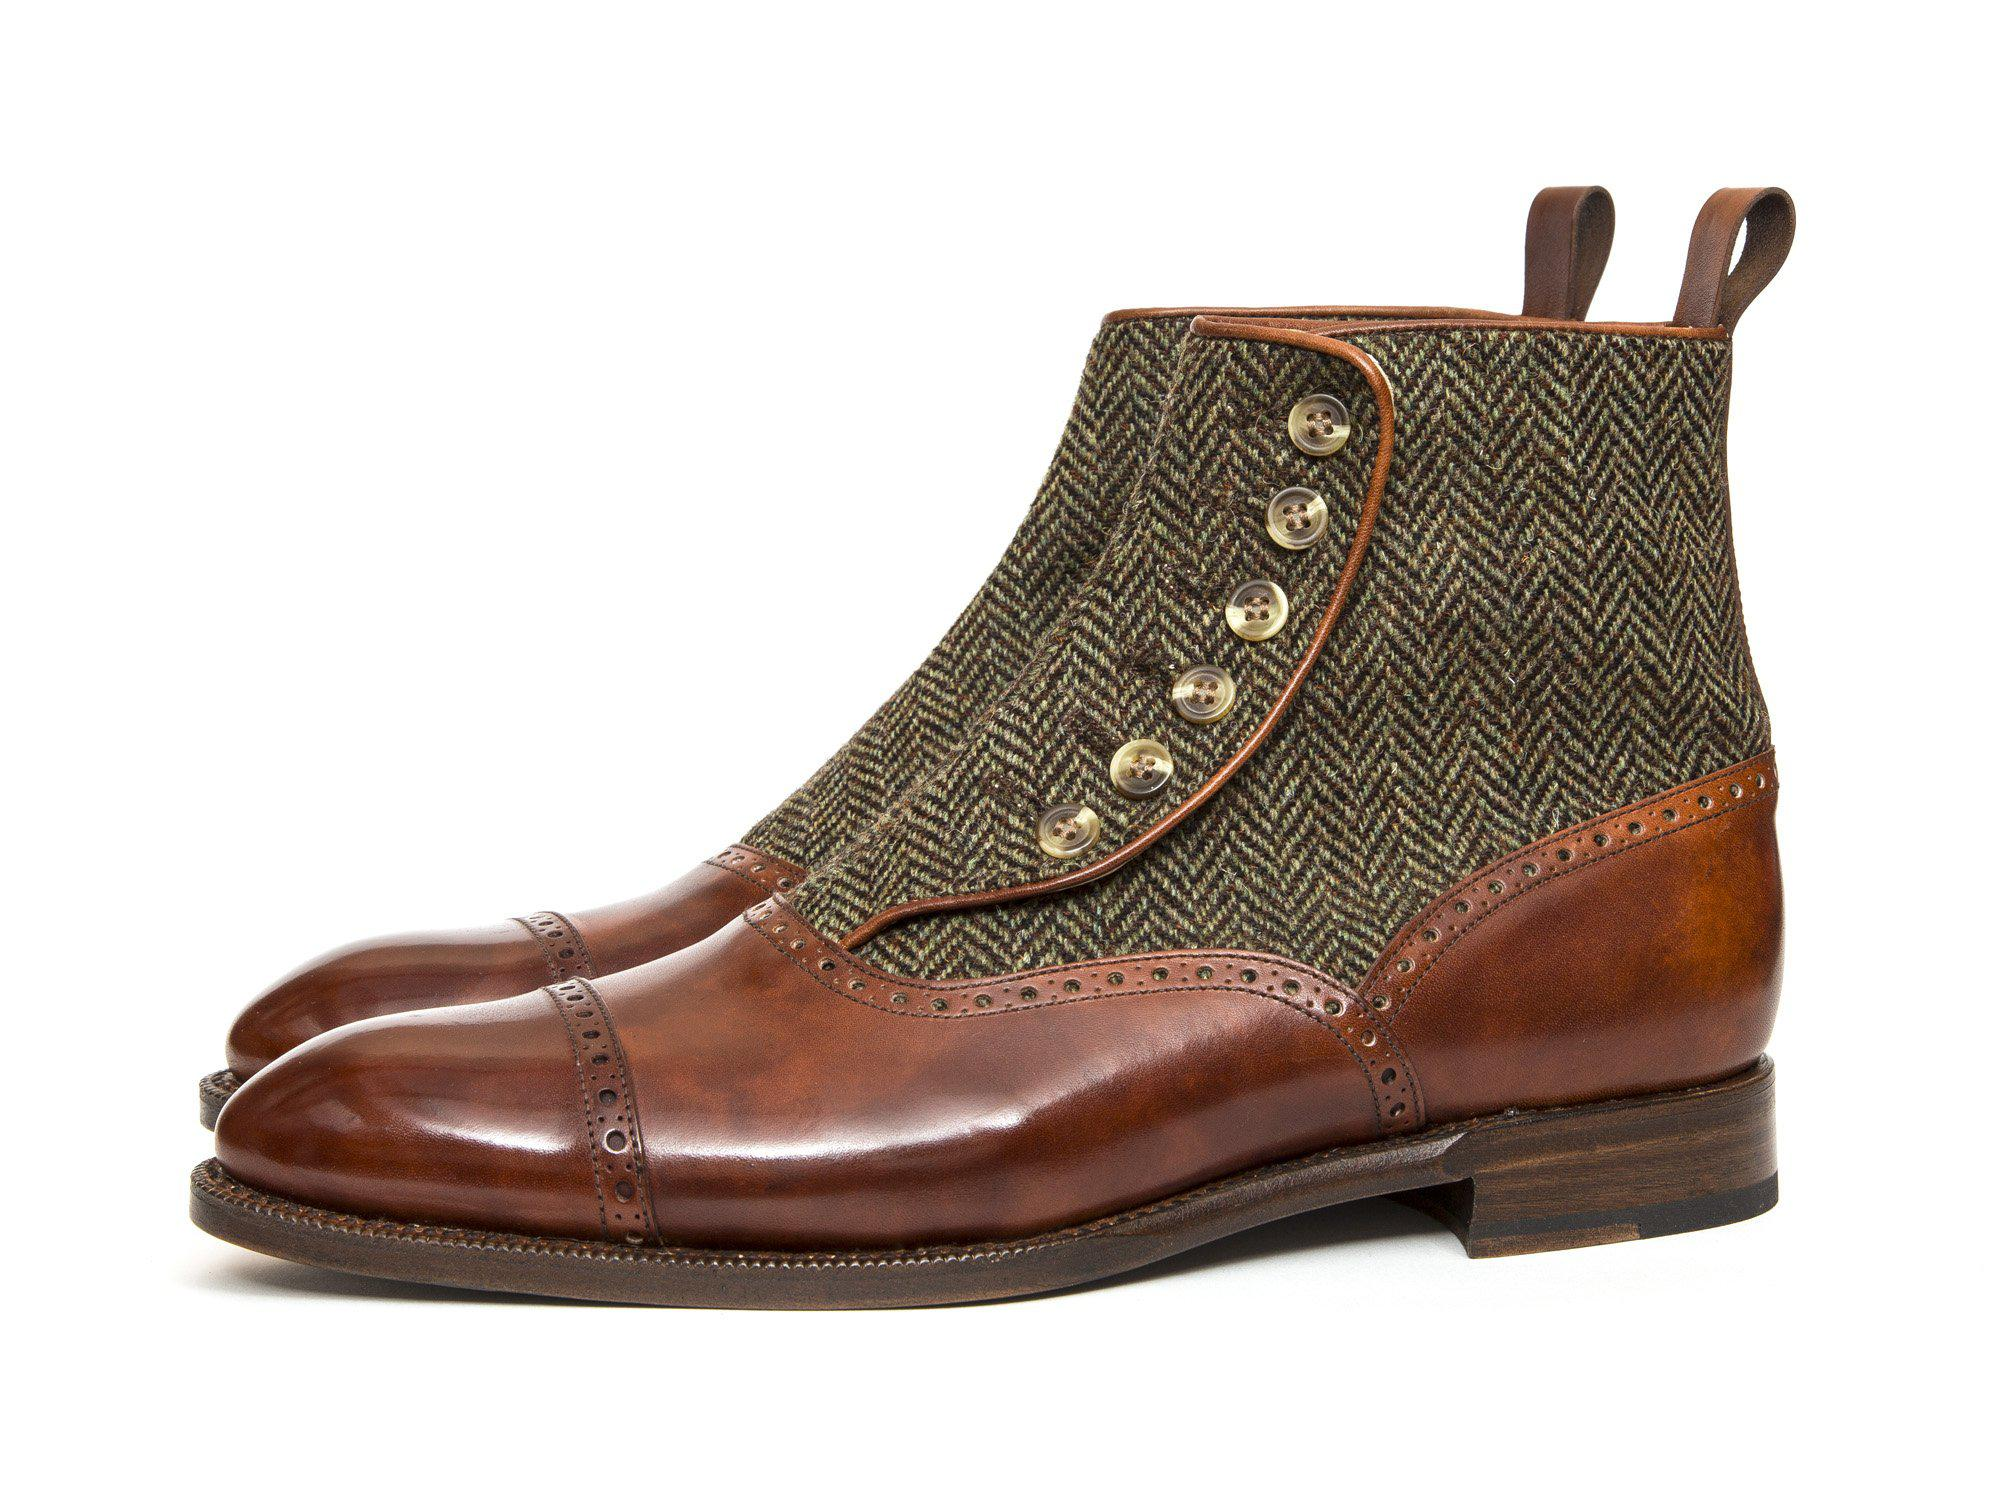 J.FitzPatrick Footwear - Puyallup - Gold Museum Calf / Forest Tweed - PRE ORDER